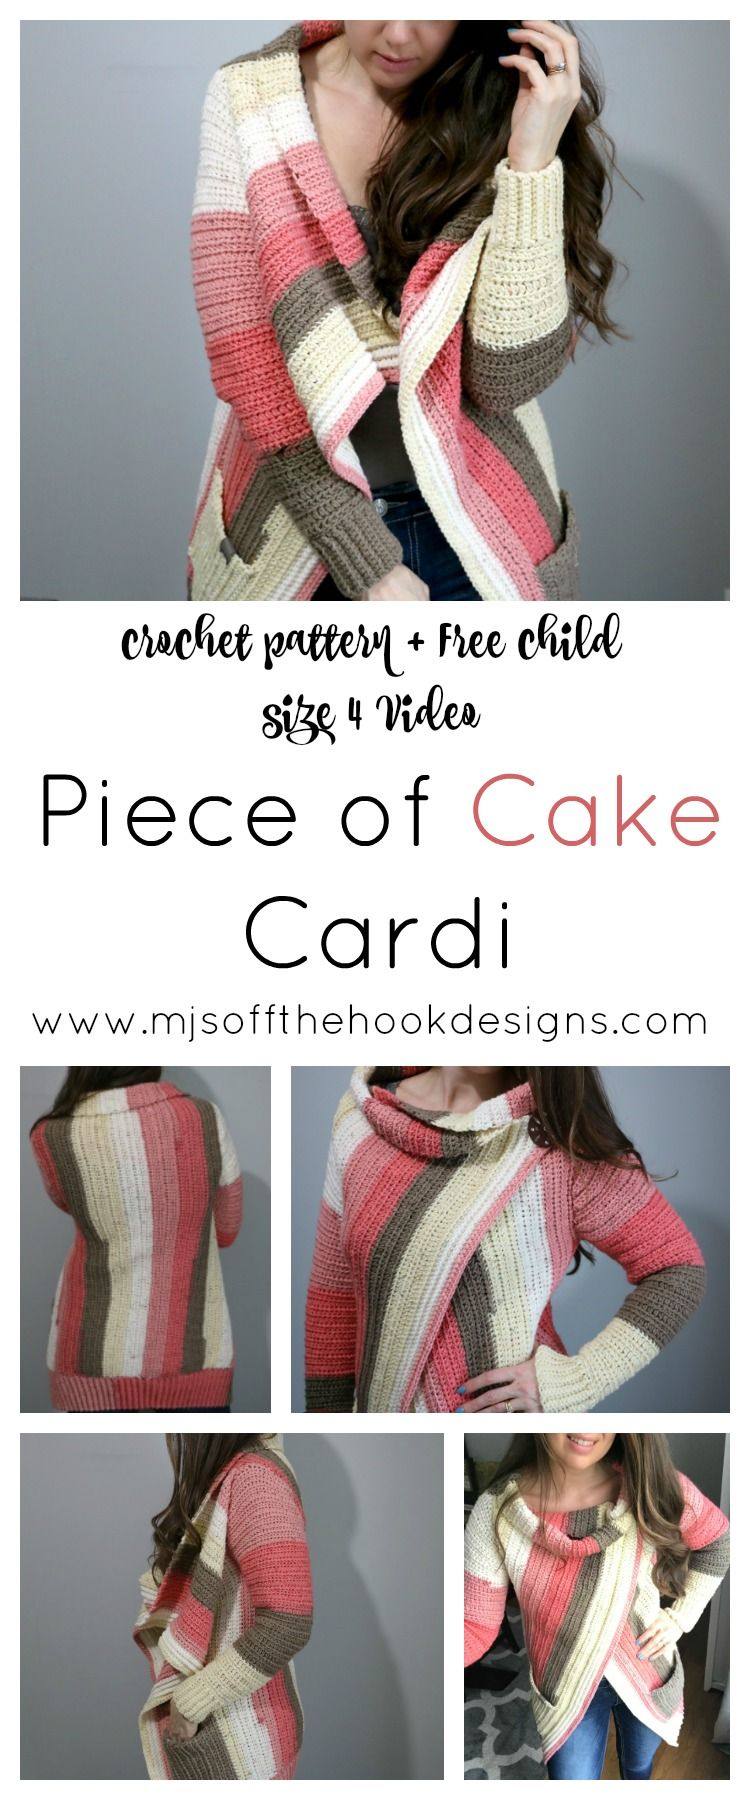 How to Make The Piece of Cake Cardi | tejer | Pinterest | Croché ...